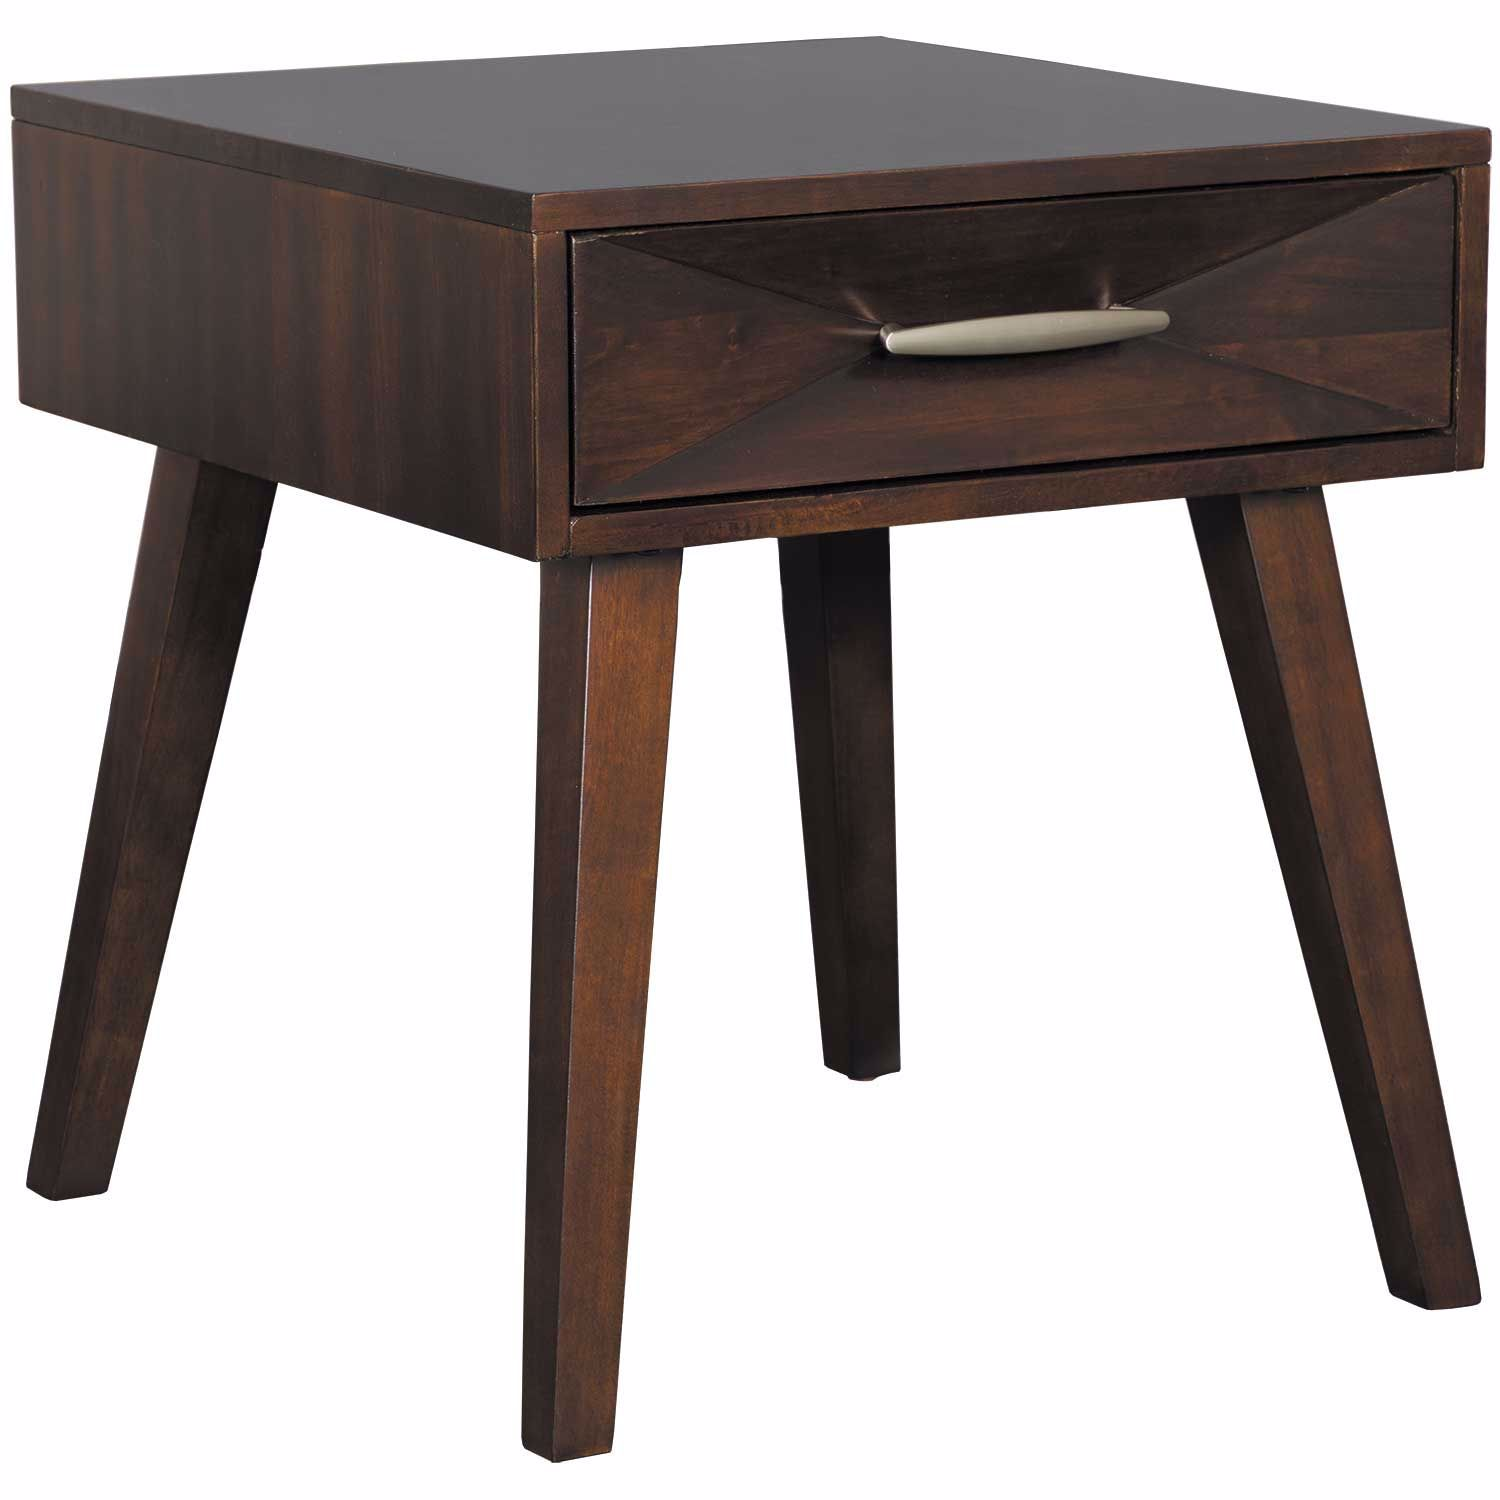 forsythe end table standard furniture afw tables ture occasional with storage mainstays cabinet instructions tall bathroom natural wood side mirrored entryway small rustic coffee